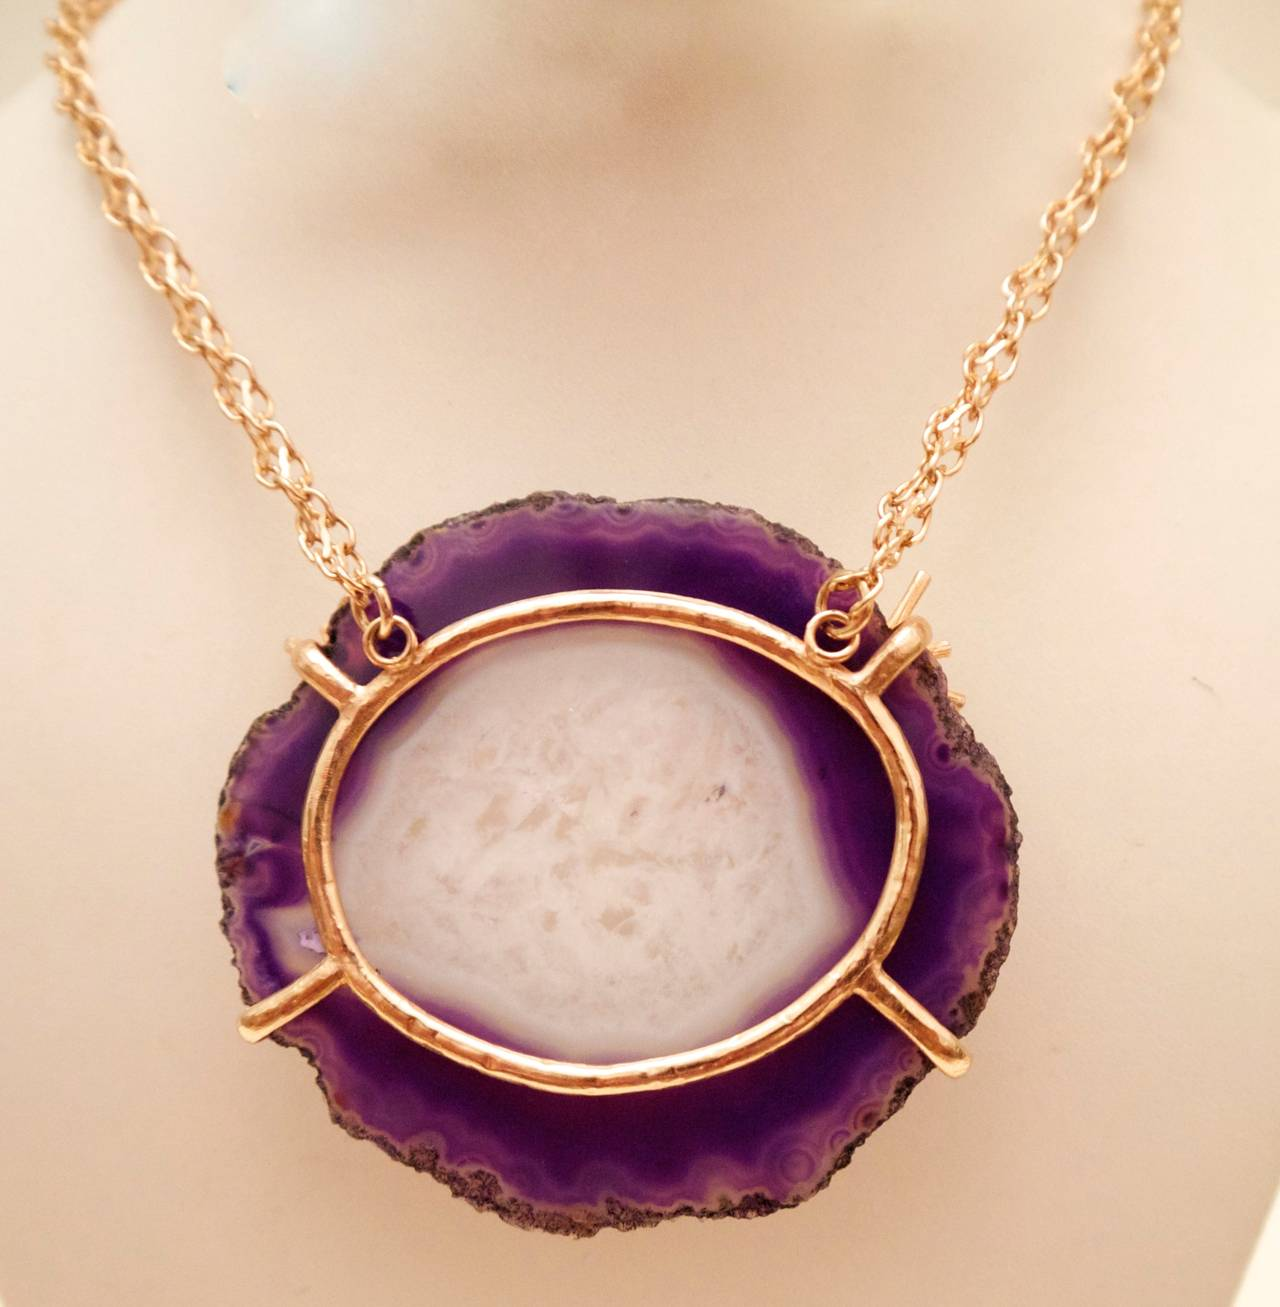 Chanel purple and white agate cross section necklace. This couture piece was only made available in Chanel Boutiques and was produced in extremely limited quantities. This particular necklace has a gold tone chain, and the chain has gold tone star